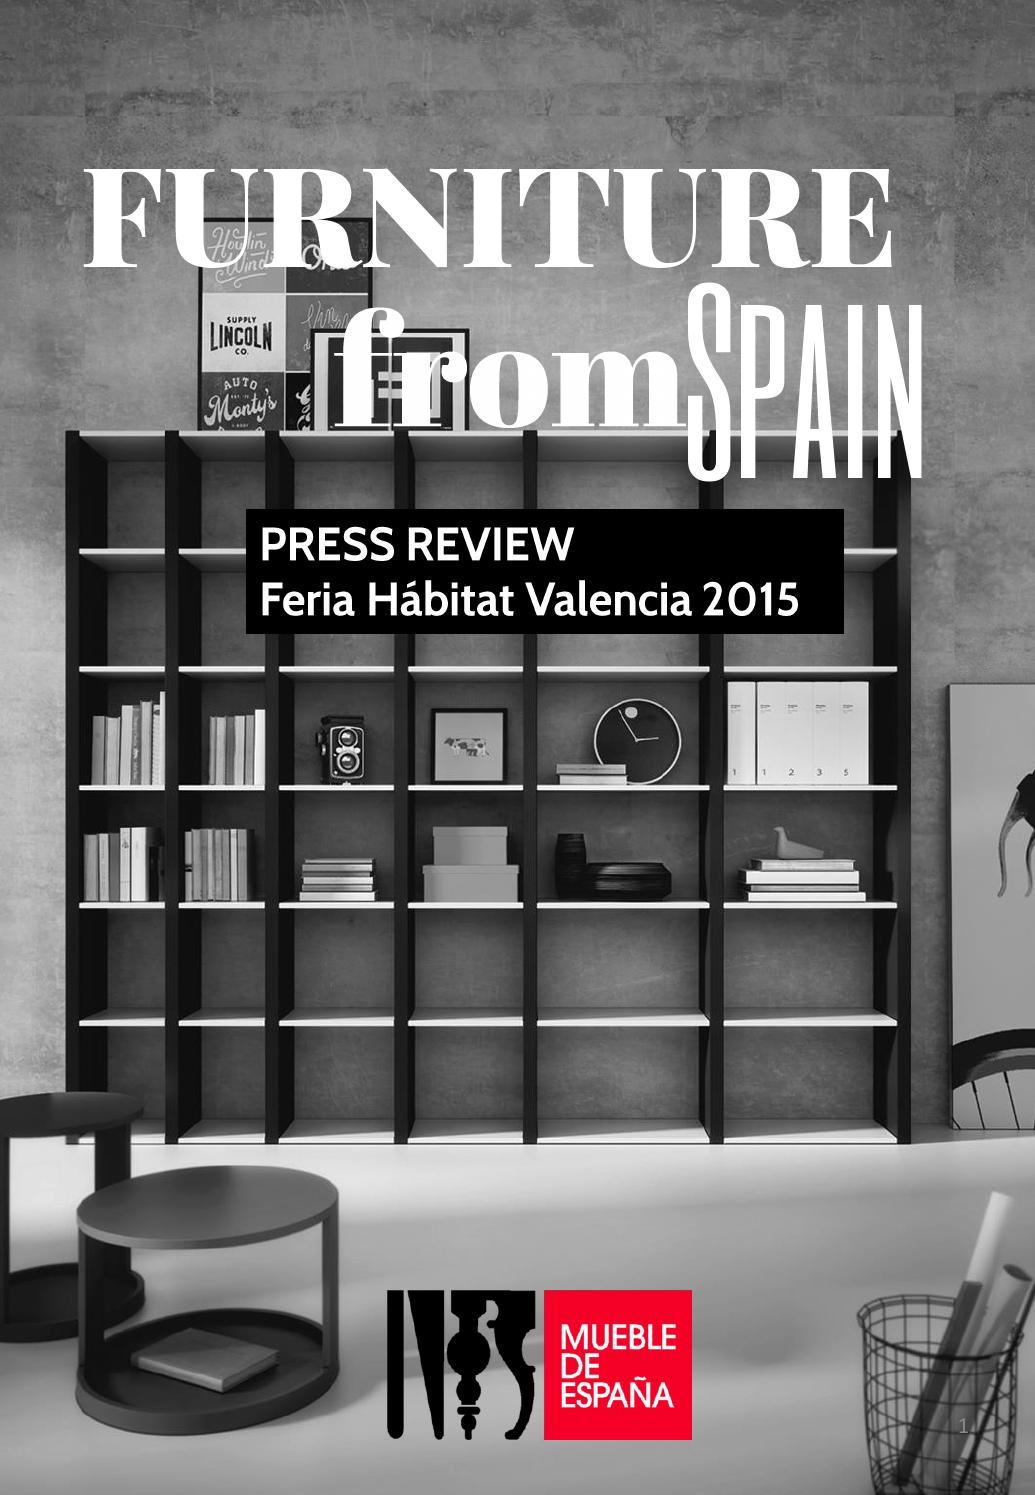 Press release feria habitat valencia 2015 by furniture from spain issuu - Habitat muebles espana ...